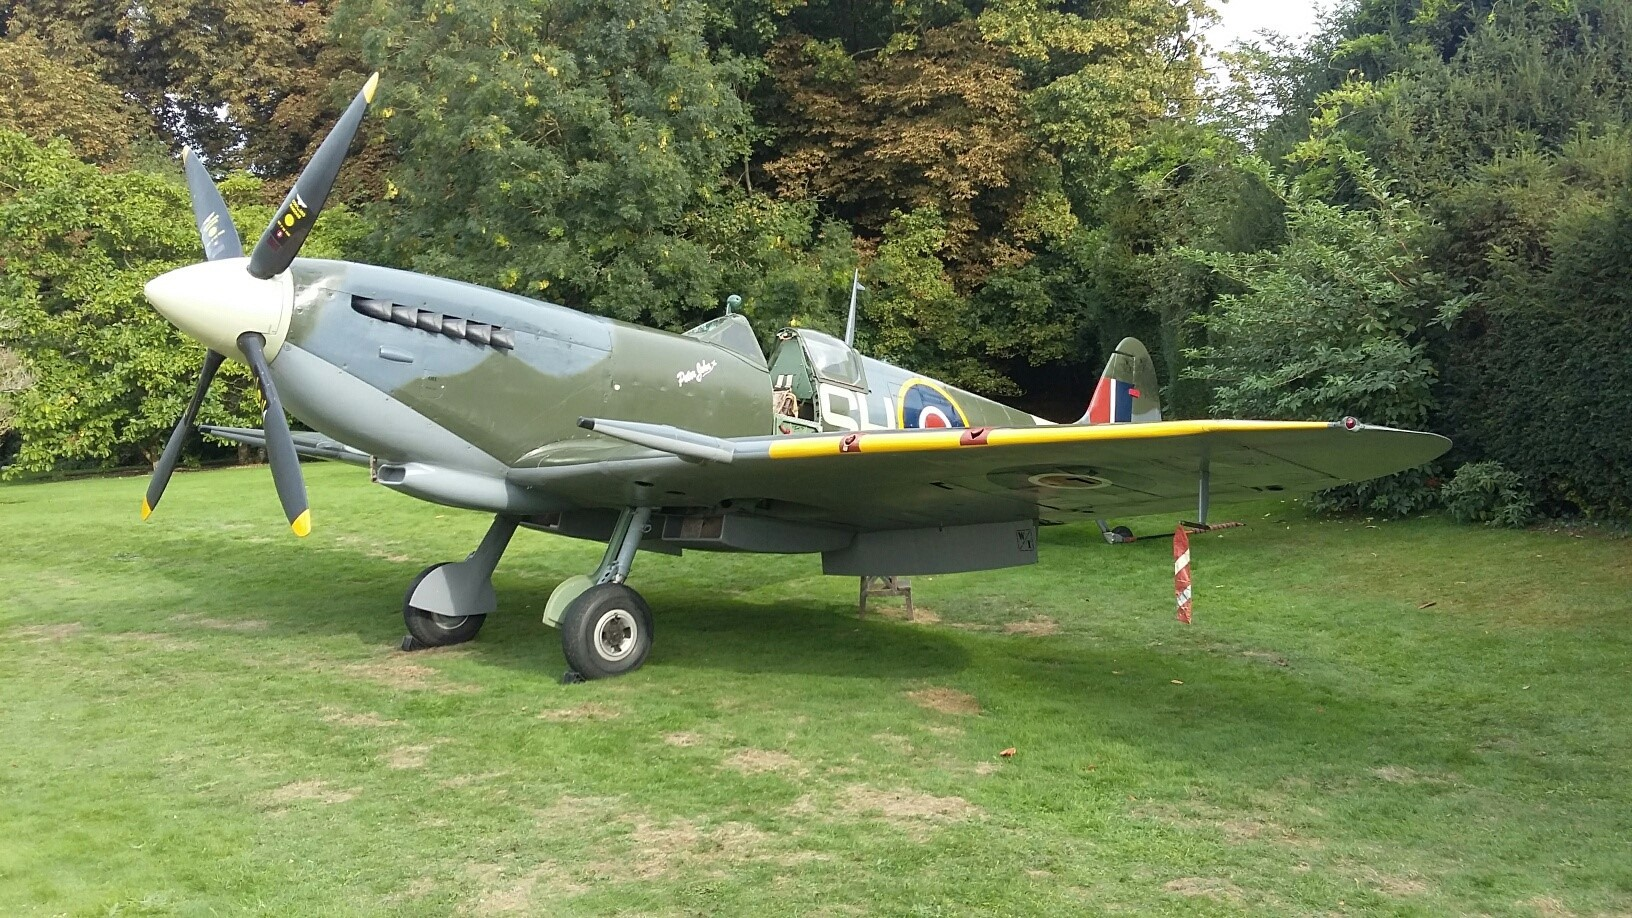 ON SHOW: The only full-size replica Spitfire MKIX will provide a backdrop to Remebrance parade in Durham, on Sunday